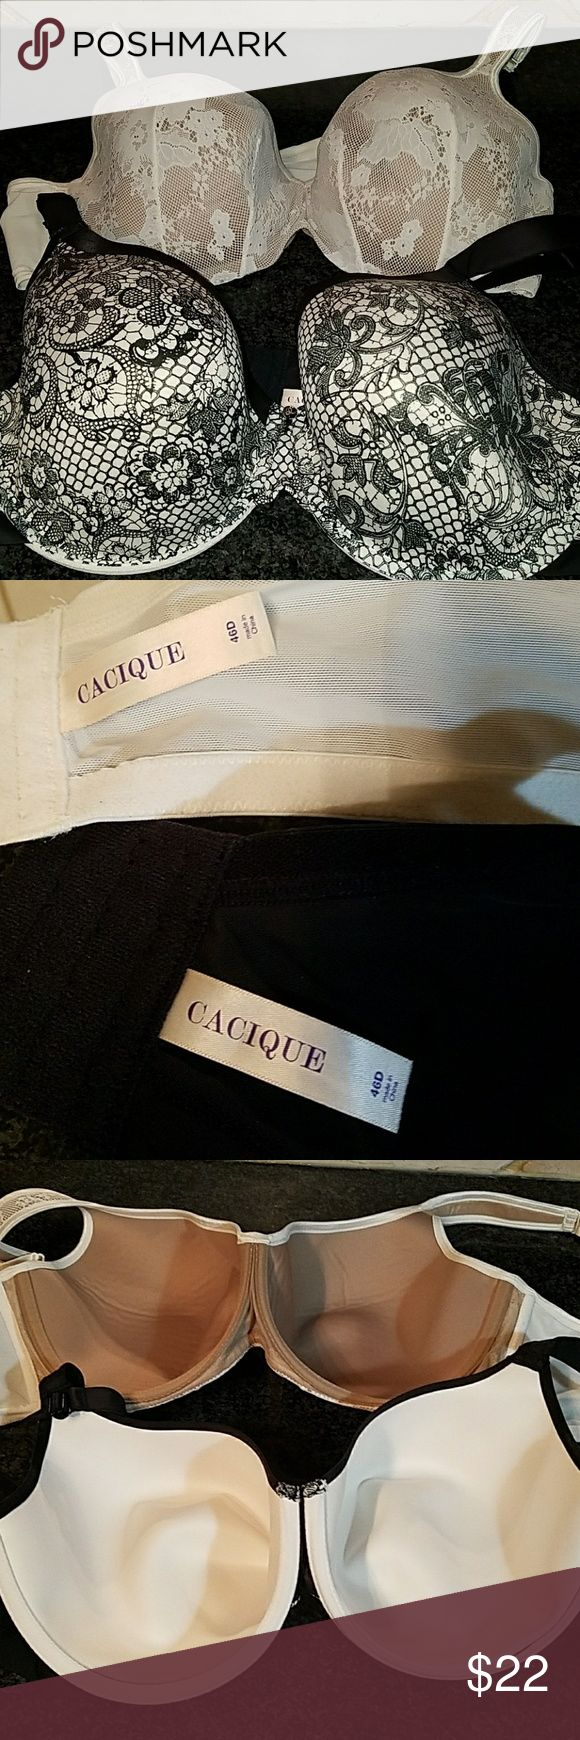 CACIQUE BRAS SIZE 46 D LIKE NEW CONDITION Two Cacique bras size 46 D, both are in like-new condition with no signs of wear and no flaws. These bras are from a clean non-smoking home and are in Primo condition. Cacique Intimates & Sleepwear Bras